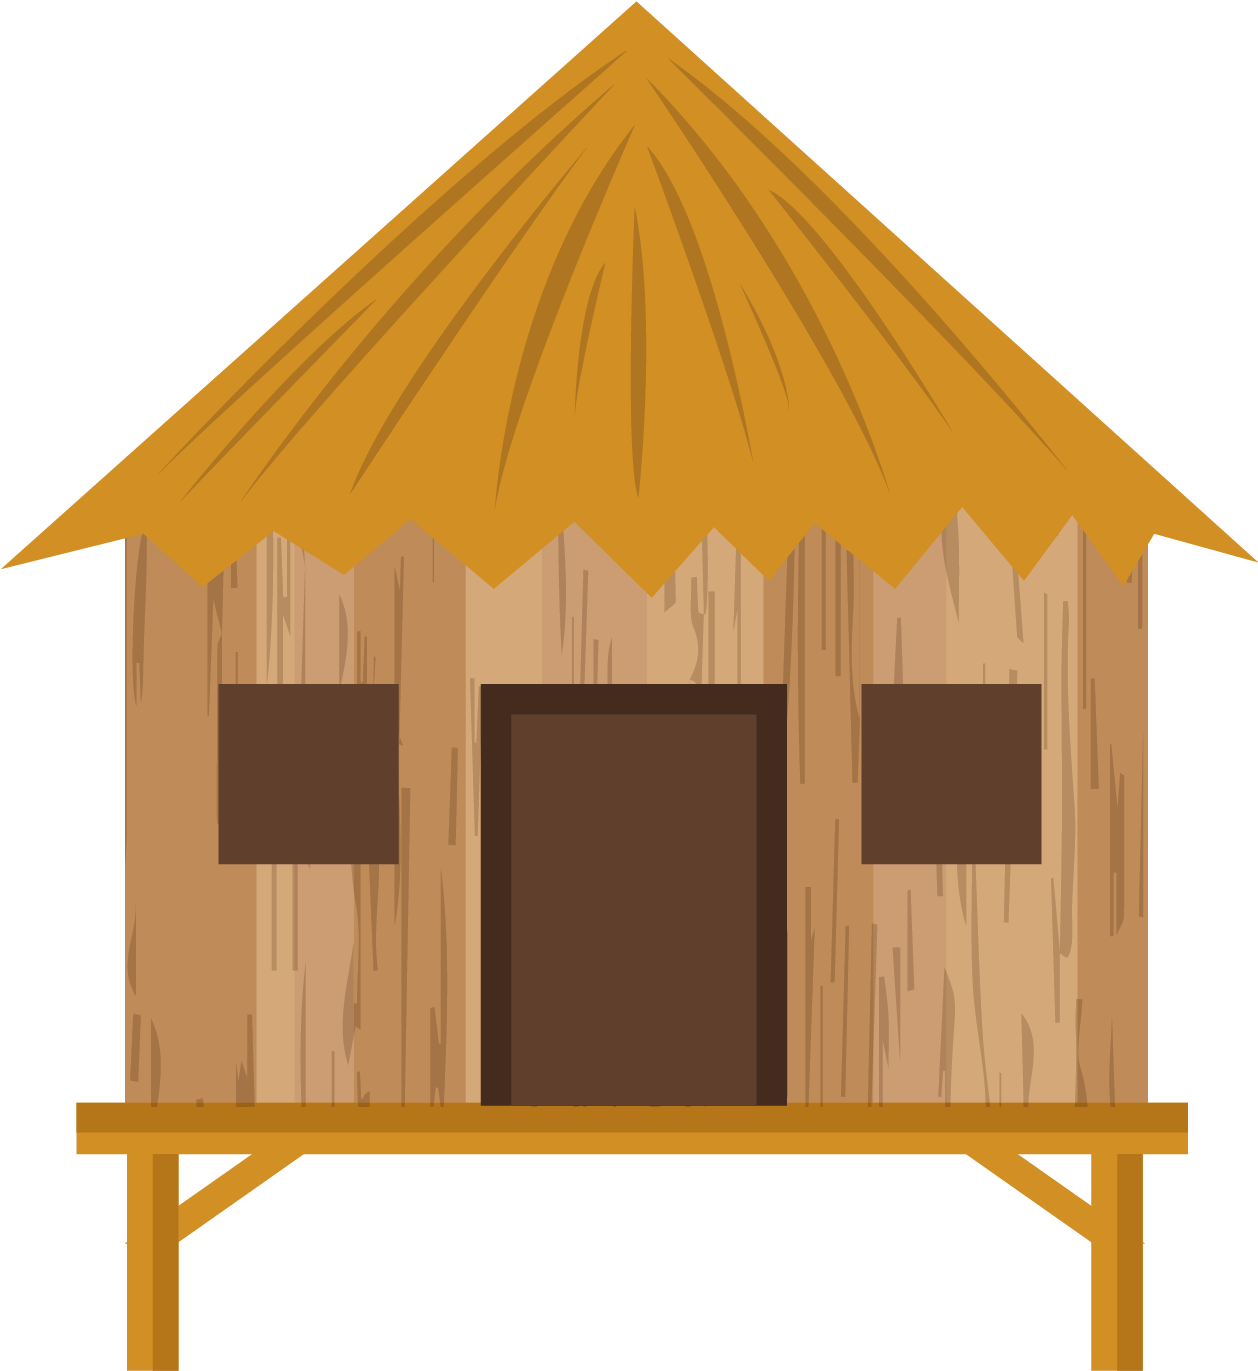 Download free png royalty. Clipart grass house